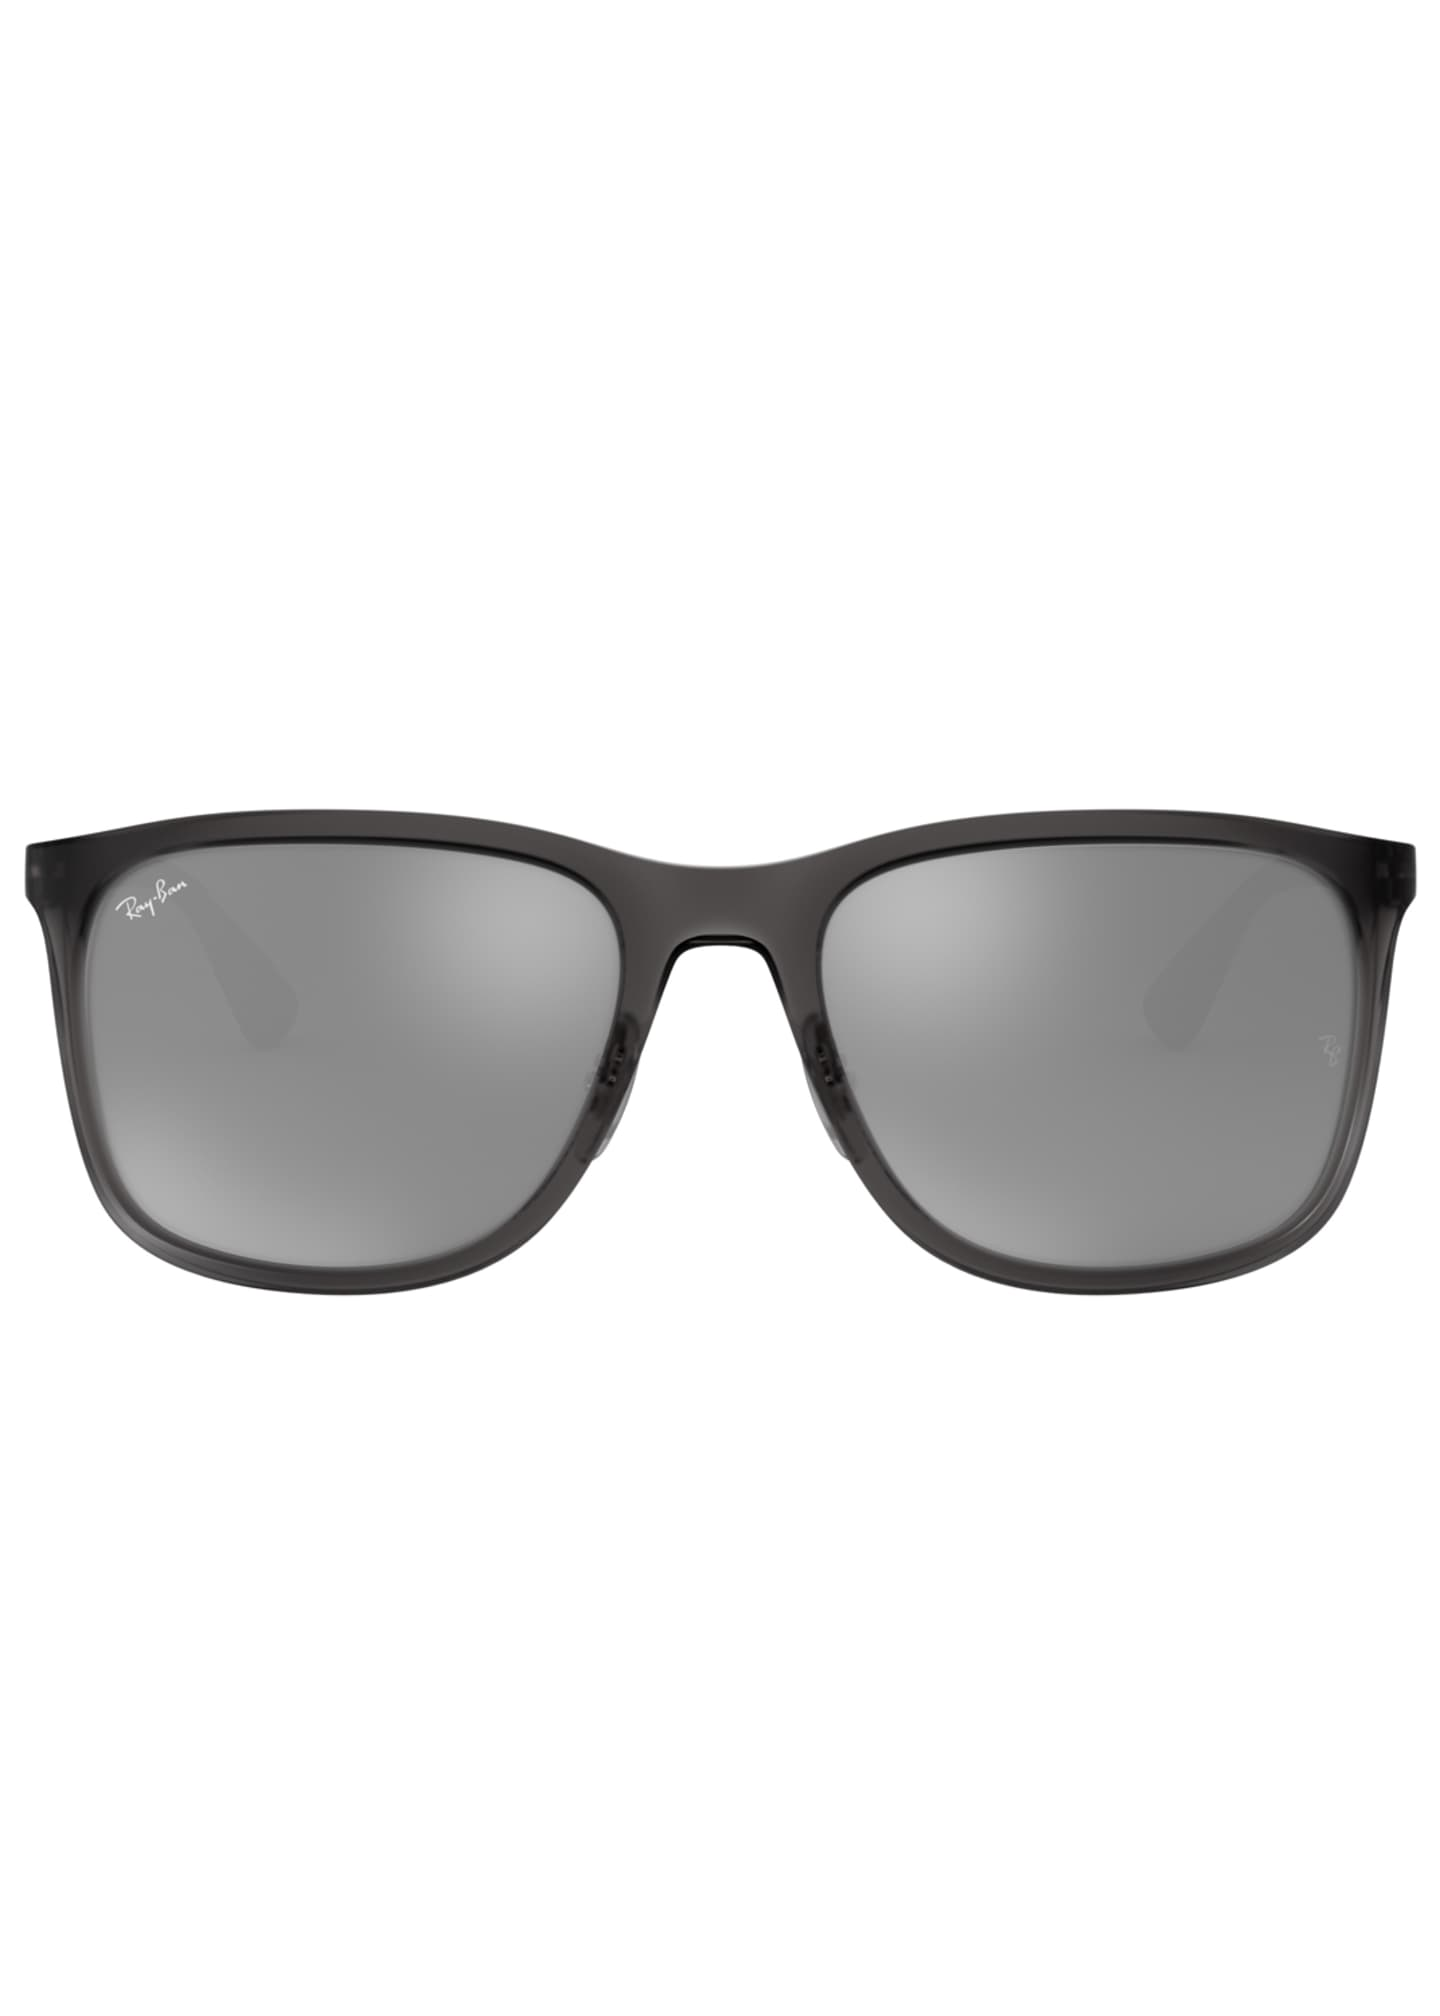 Image 2 of 2: Men's Square Mirrored Propionate Sunglasses